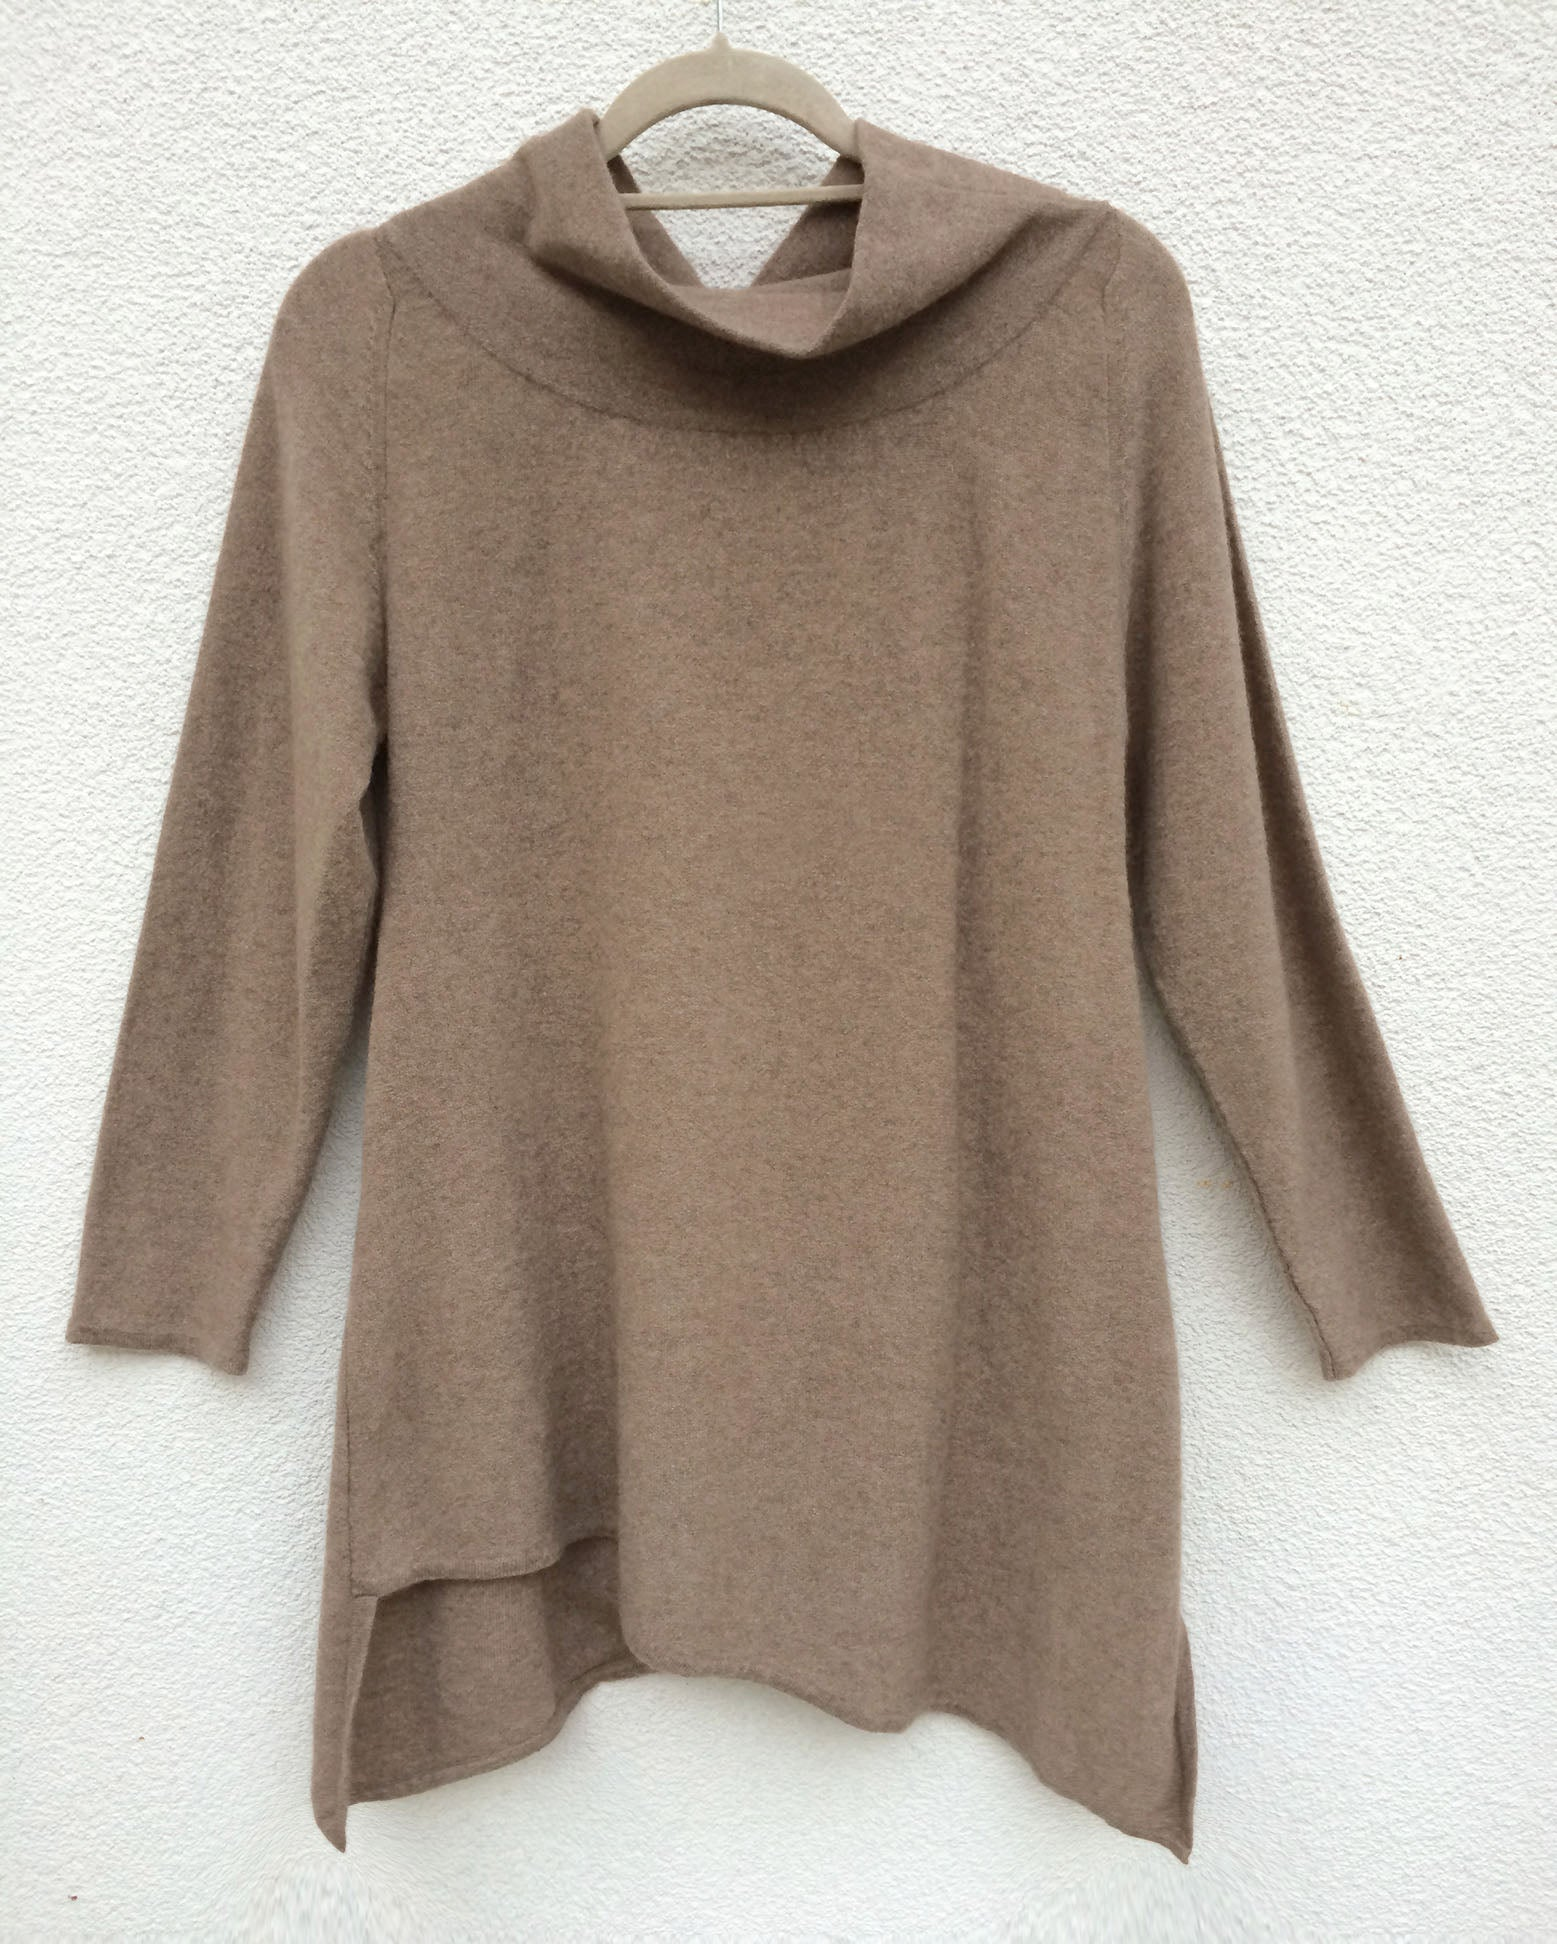 Triangle bottom Cashmere Tunic dress in biscuit beige